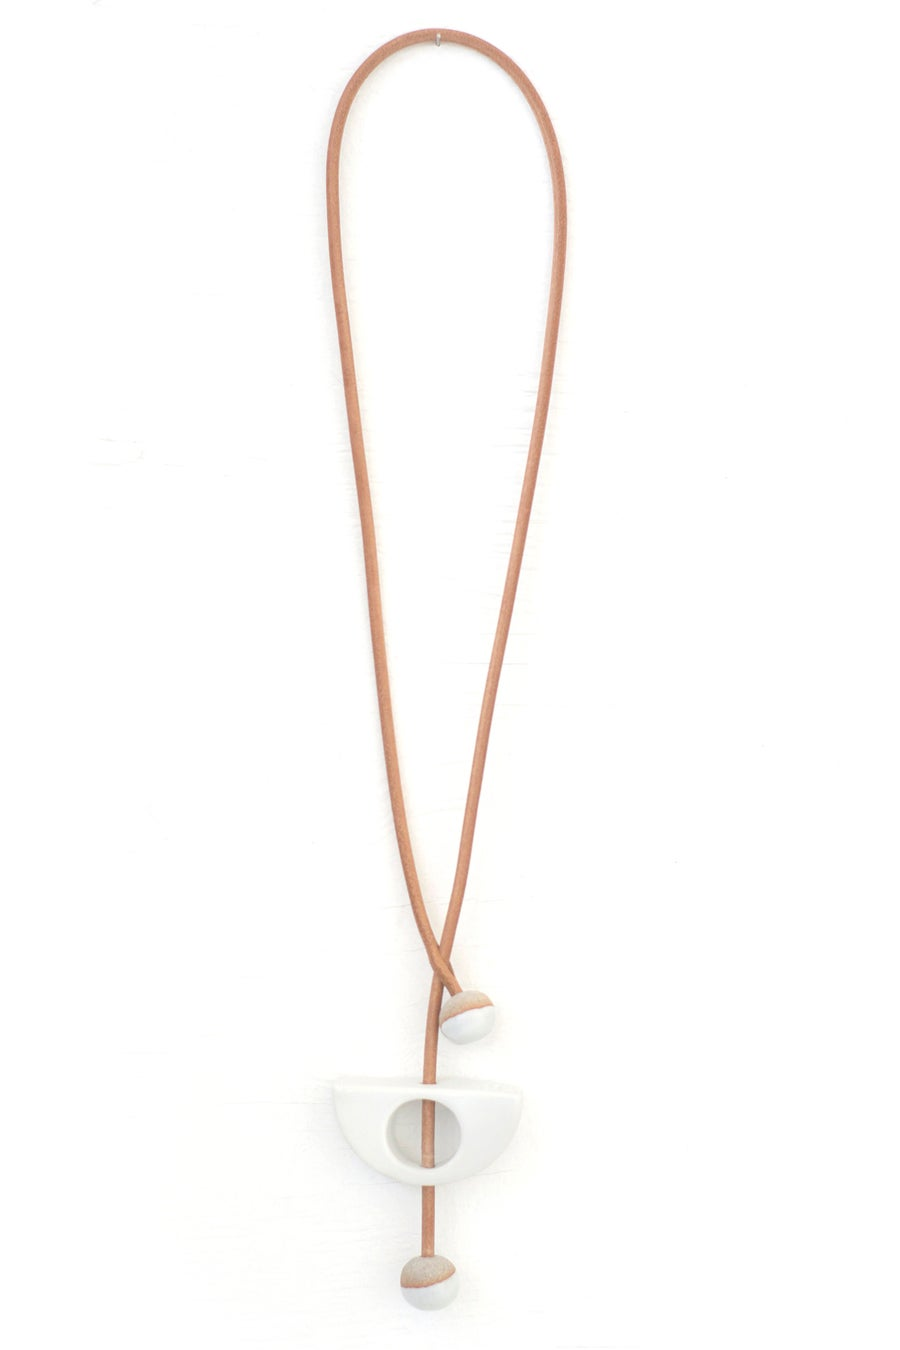 Image of overlap necklace